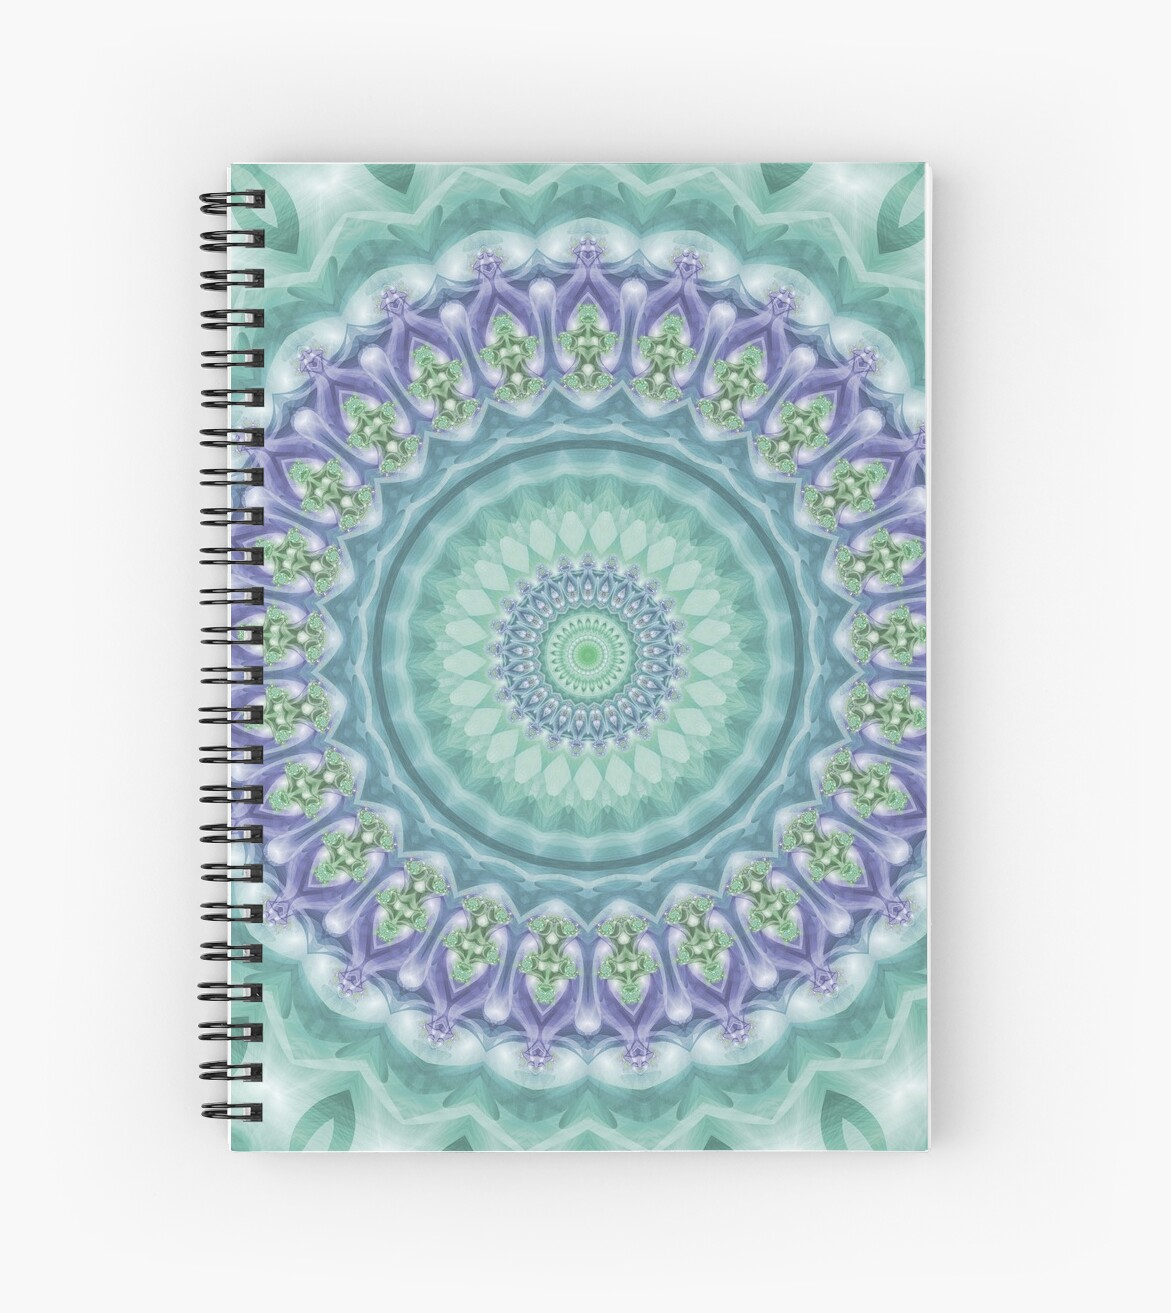 Bright Green and Purple Mandala of Balance by Kelly Dietrich